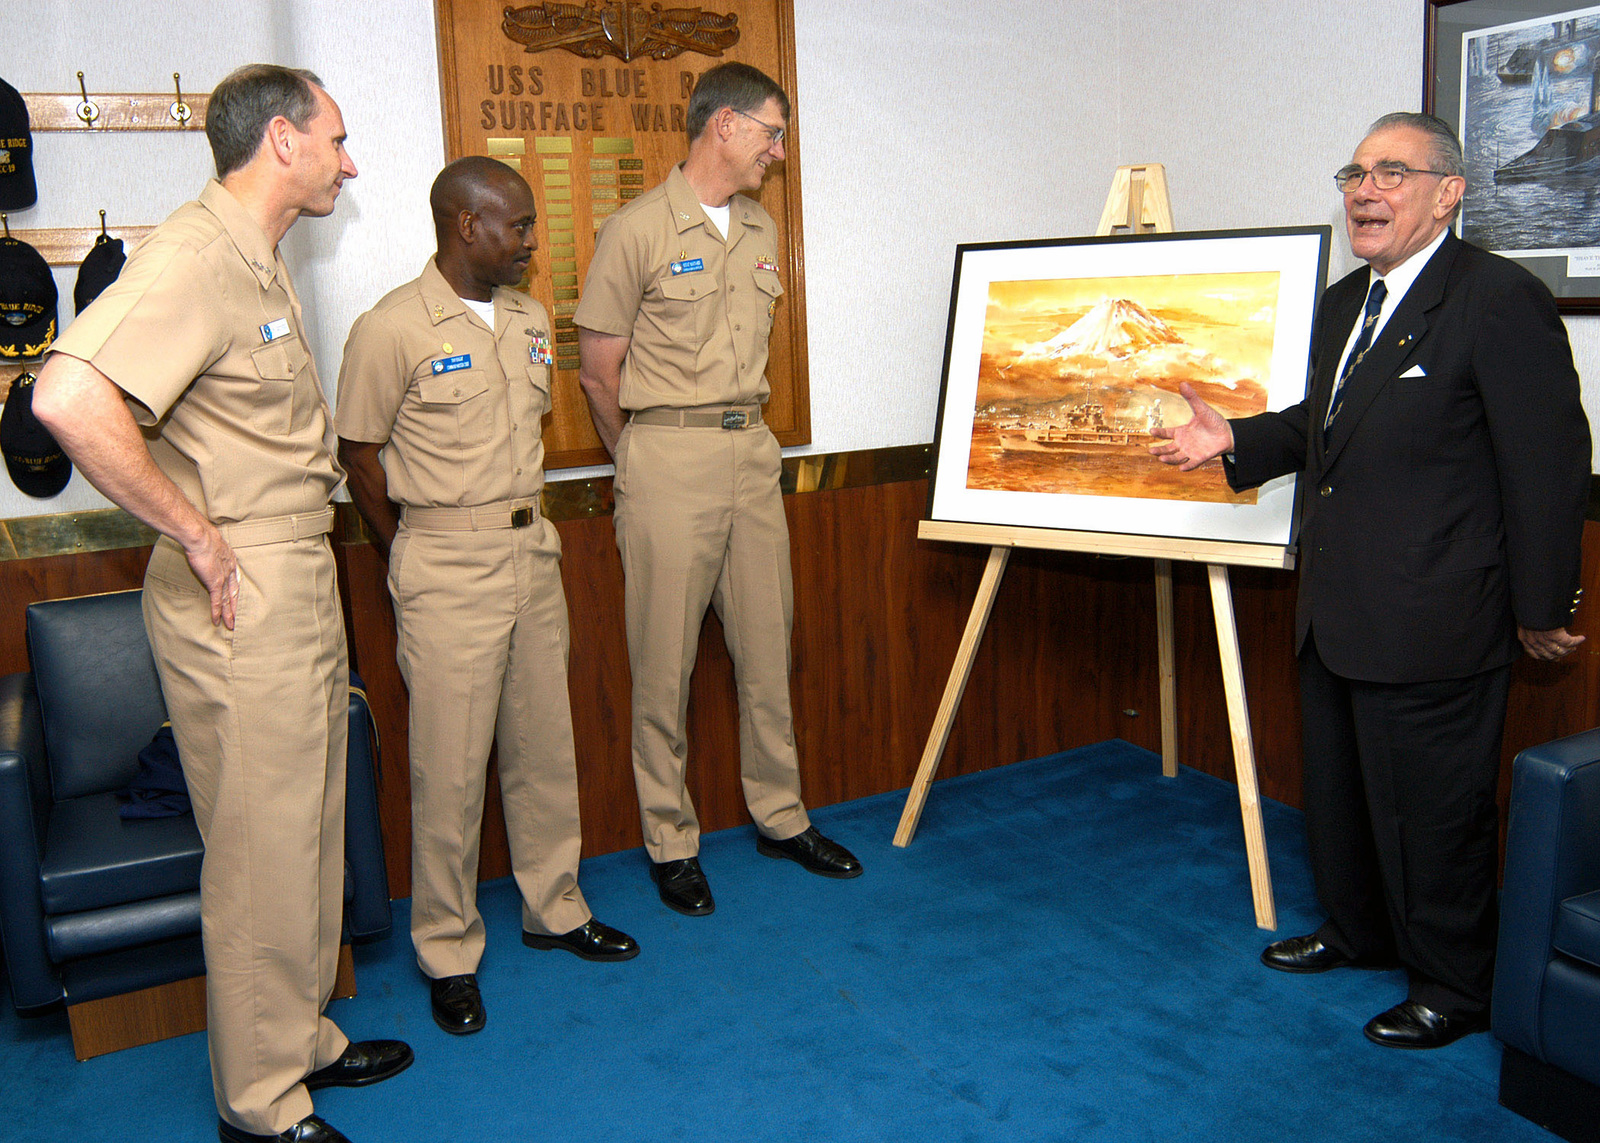 US Navy (USN) Vice Admiral (VADM) Jonathan Greenert (left), Commander, US Seventh Fleet; USS BLUE RIDGE (LCC 19) Command MASTER CHIEF (Surface Warfare) (CMDMC (SW)) Anthony E. Knight (second from left); and BLUE RIDGE Commanding Officer, Captain (CAPT) J. Stephen Maynard (center), look on as Mr. Fred Harris unveils his newest painting. Mr. Harris, president of the Navy League in Japan, presented the officers and crew of BLUE RIDGE a painting of their ship with Mt. Fuji in the background